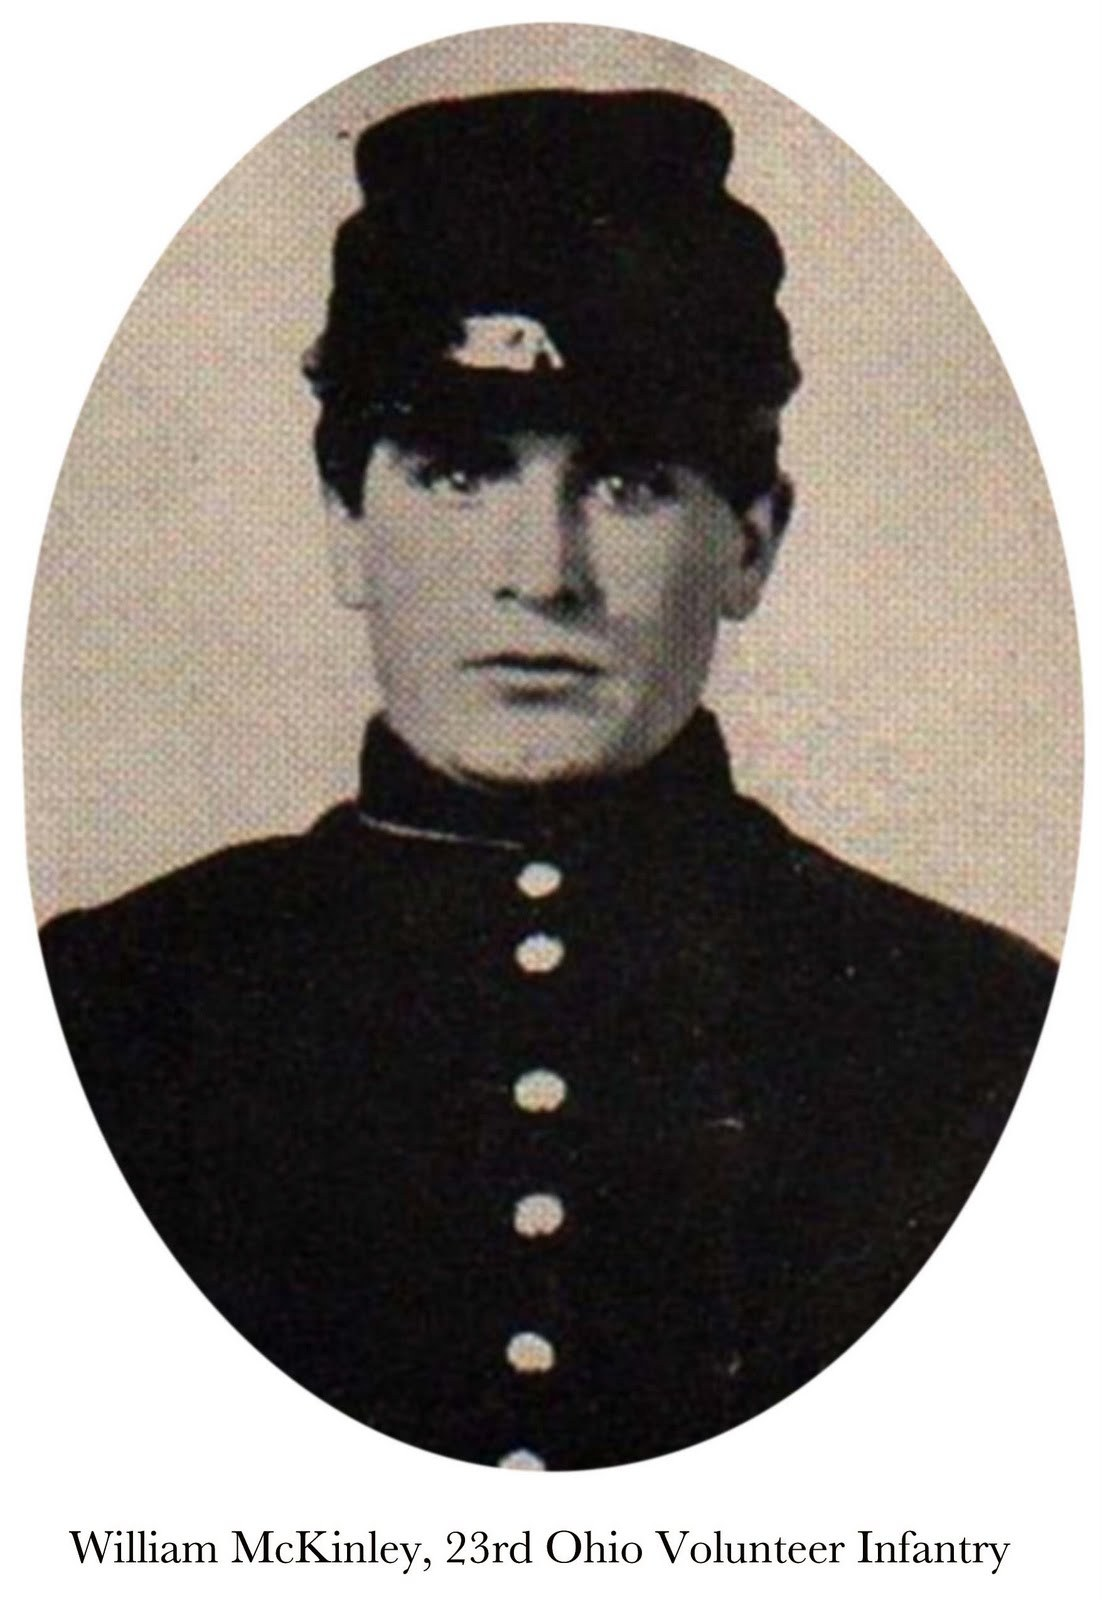 William McKinley in uniform long before he became President of the United States